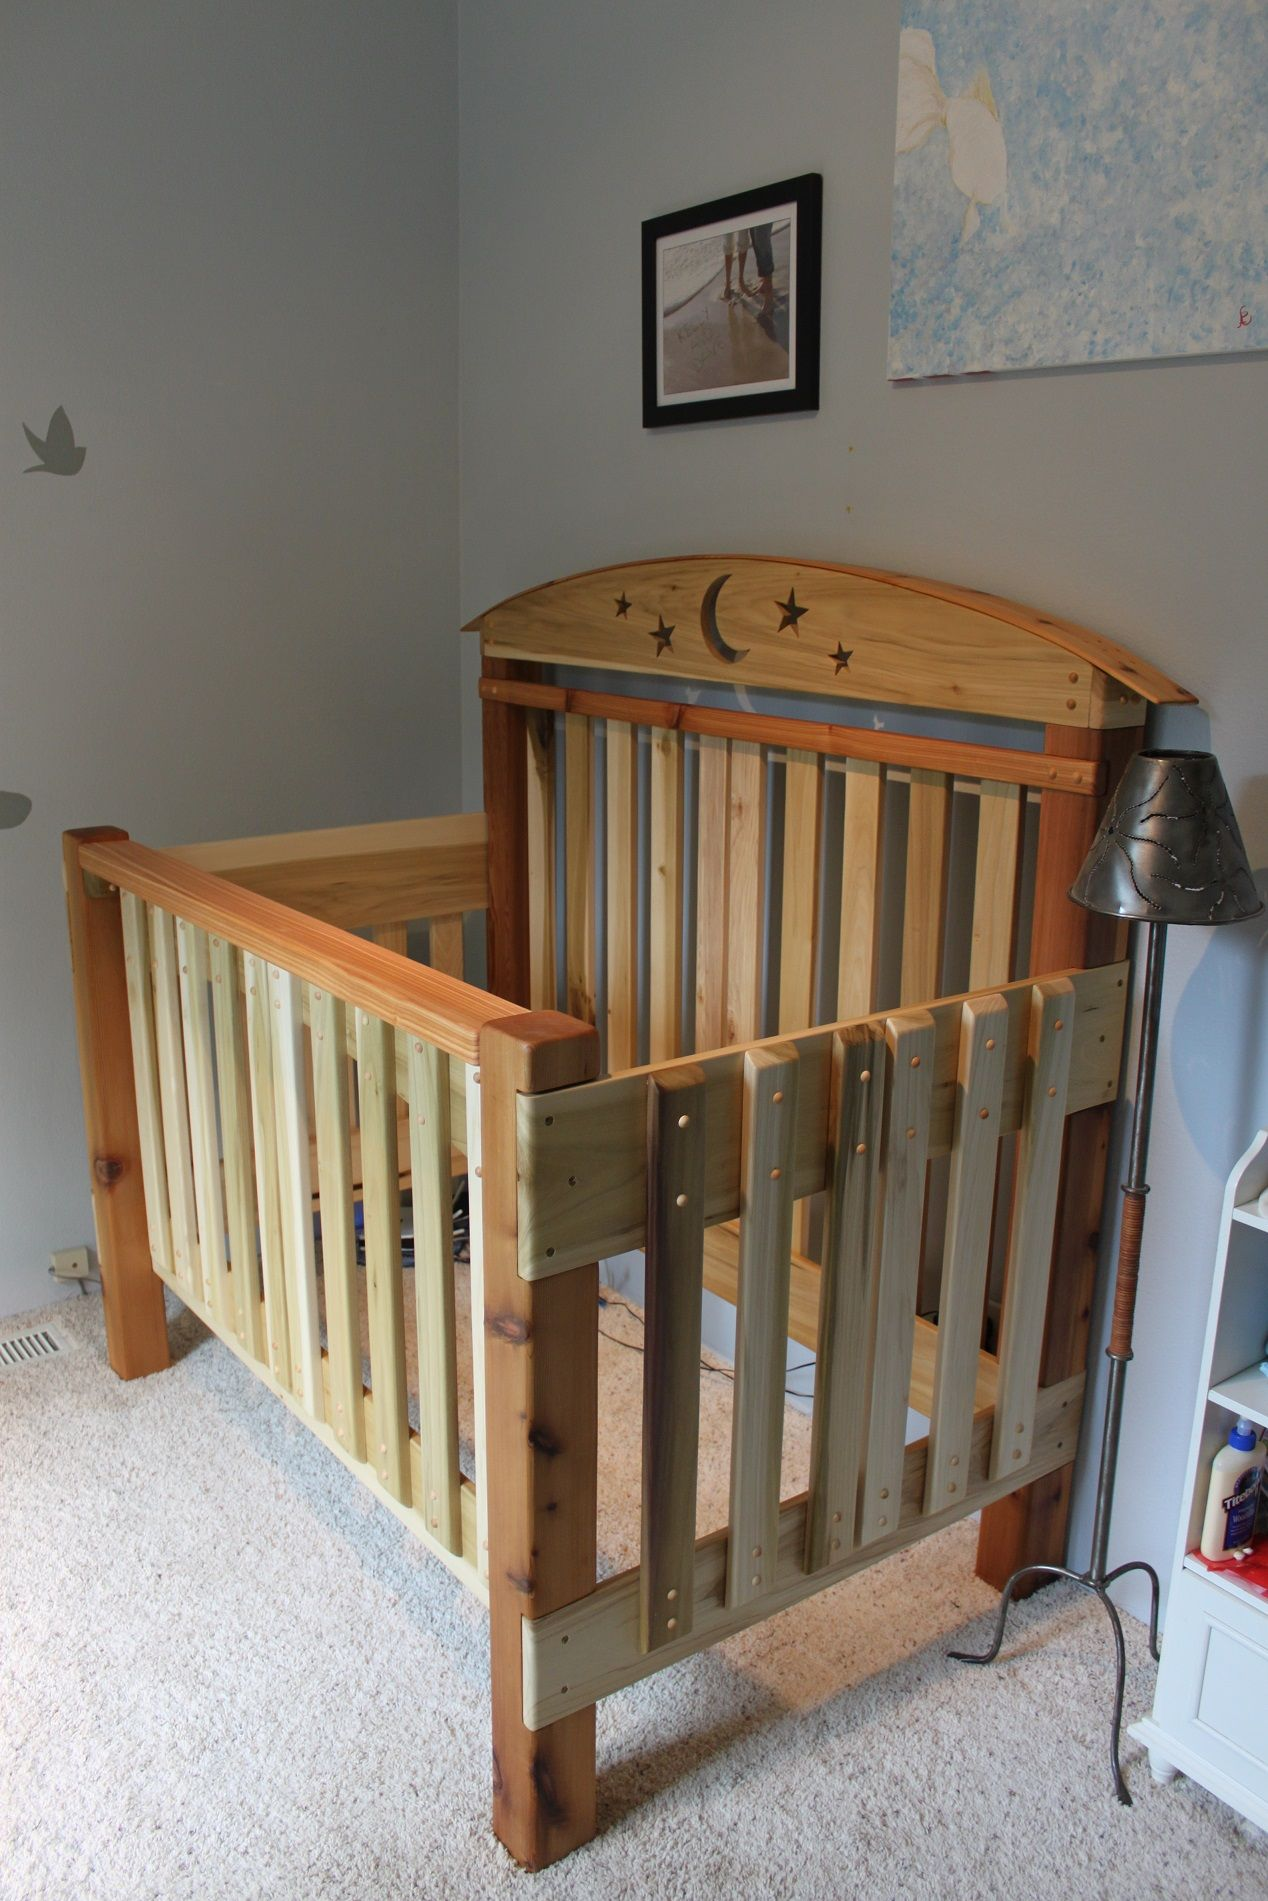 Jameson panel crib for sale - Crib Build Made Completely Of Cedar And Poplar